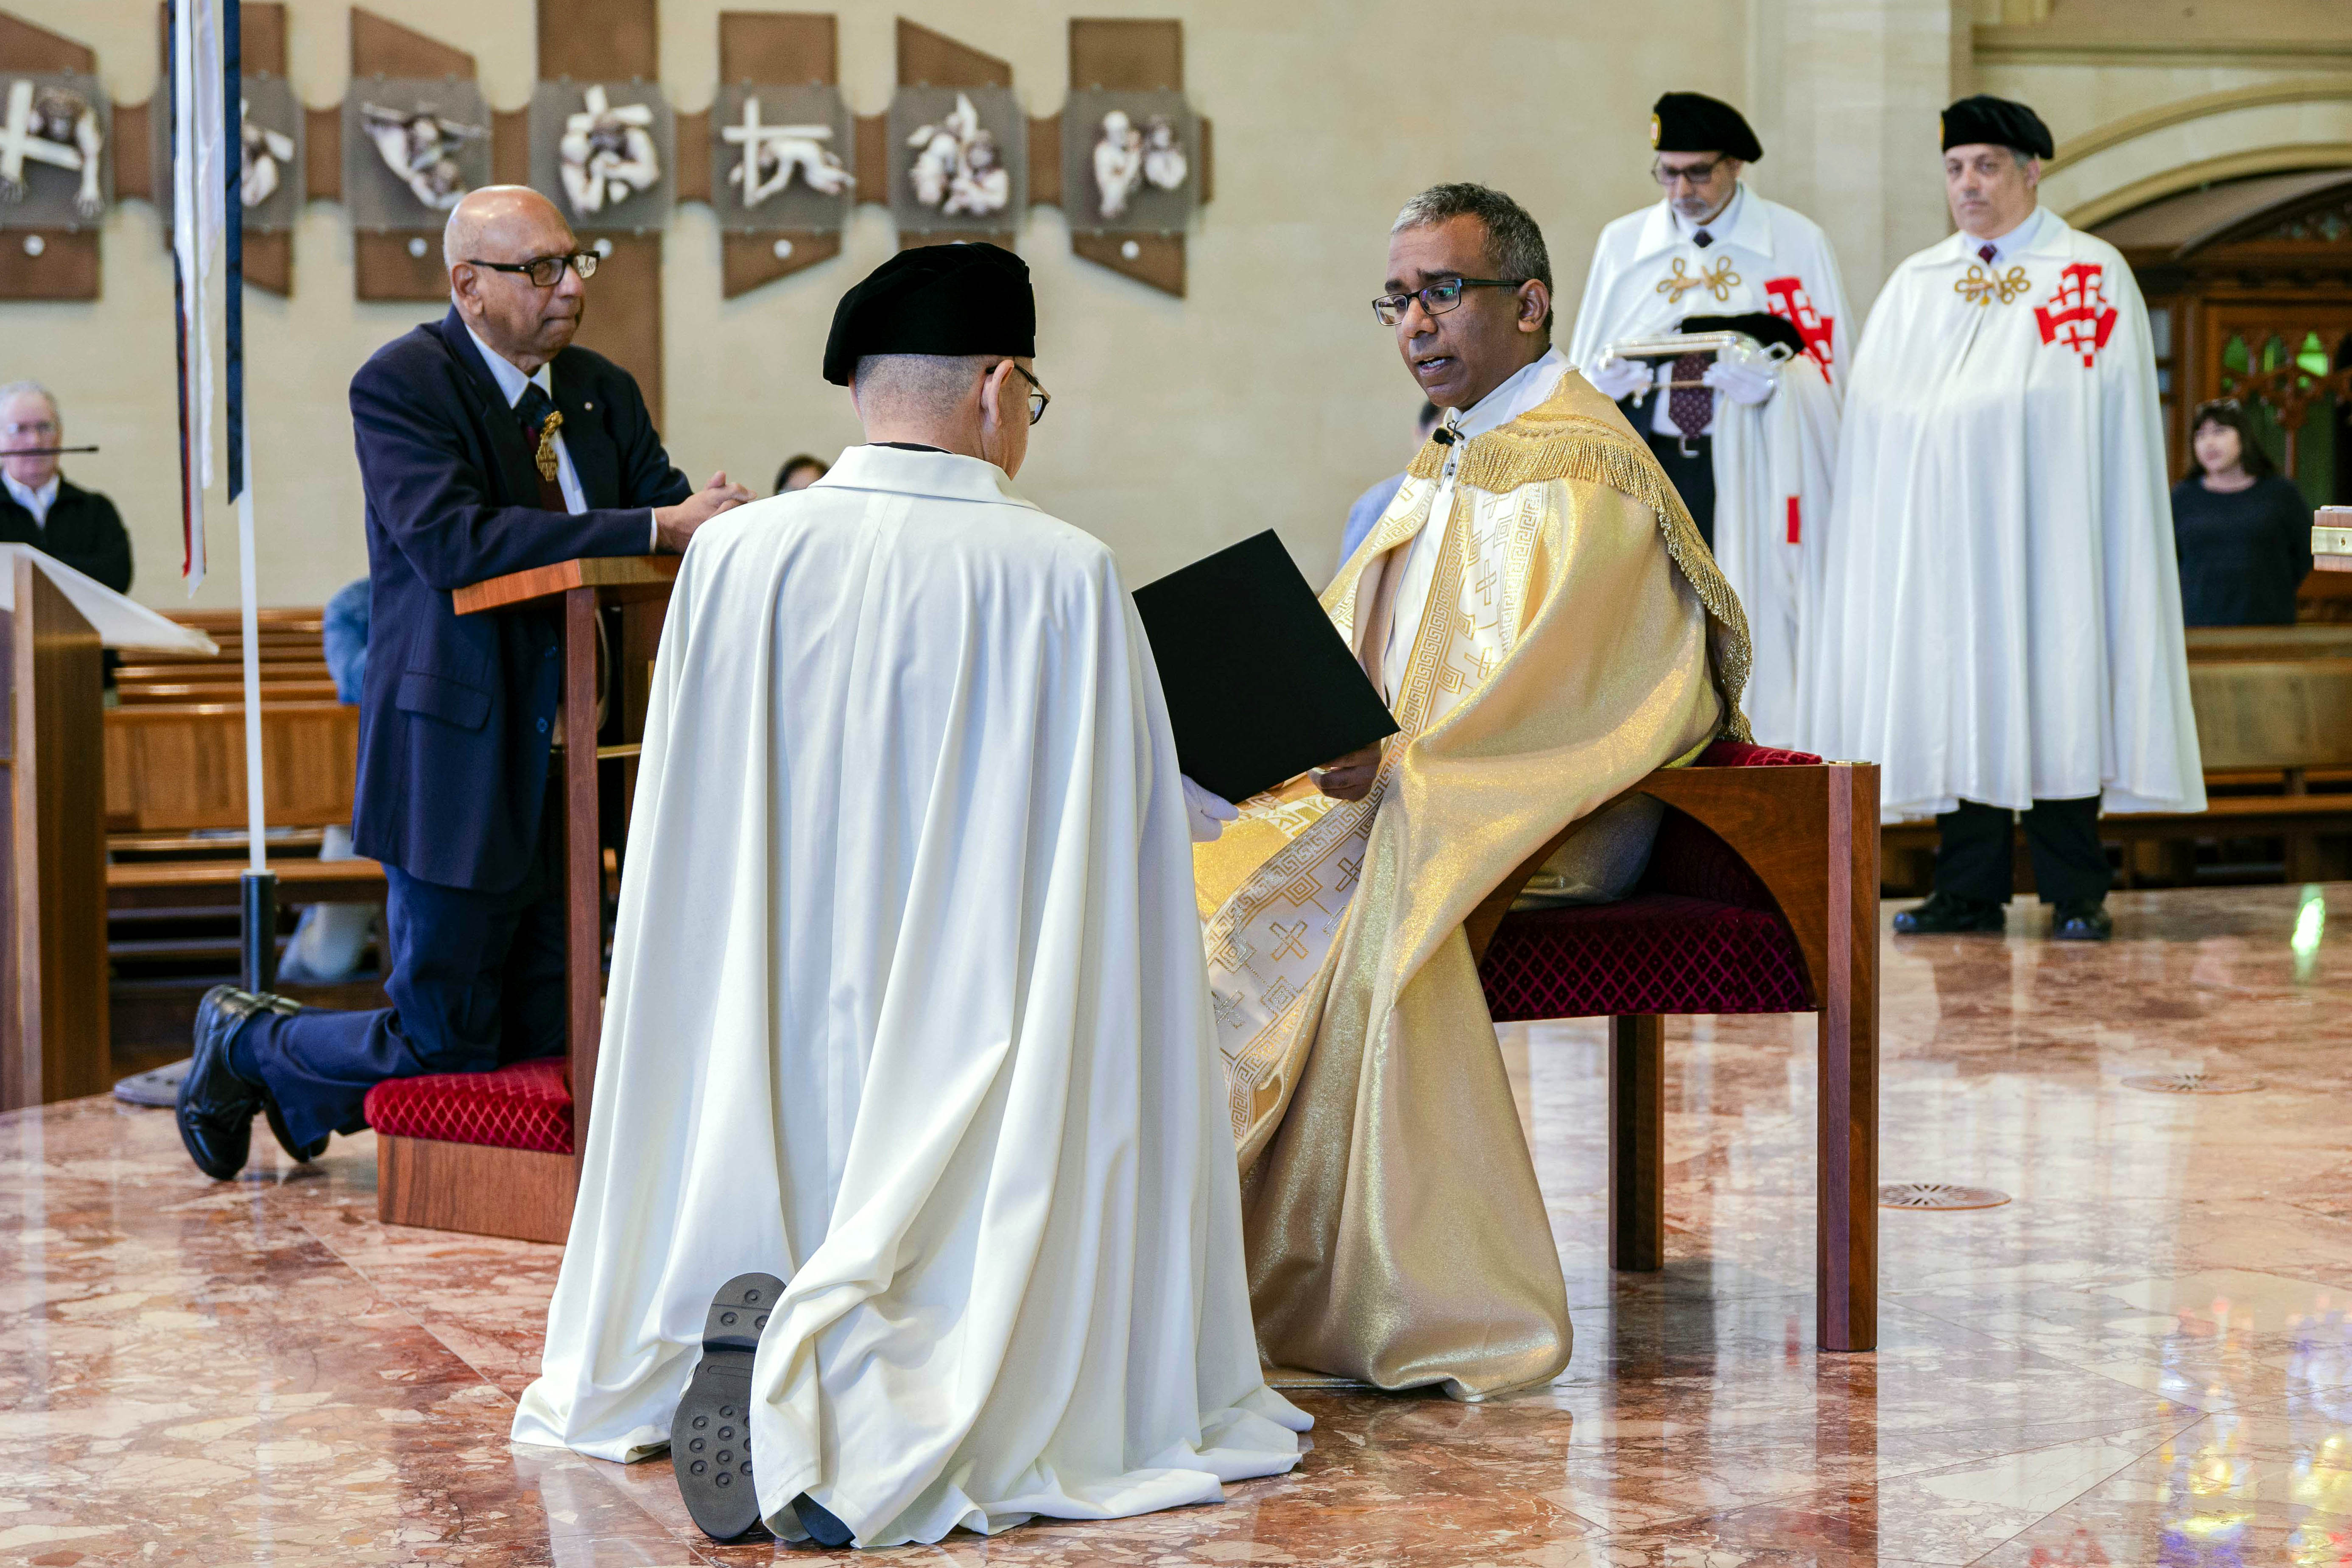 Keven Susai KCHS and Incumbent Lieutenant Jack Gardner KCHS kneel before the Altar at St Mary's, addressed by Cathedral Dean Fr Sean Fernandez. Photo: Eric Martin.